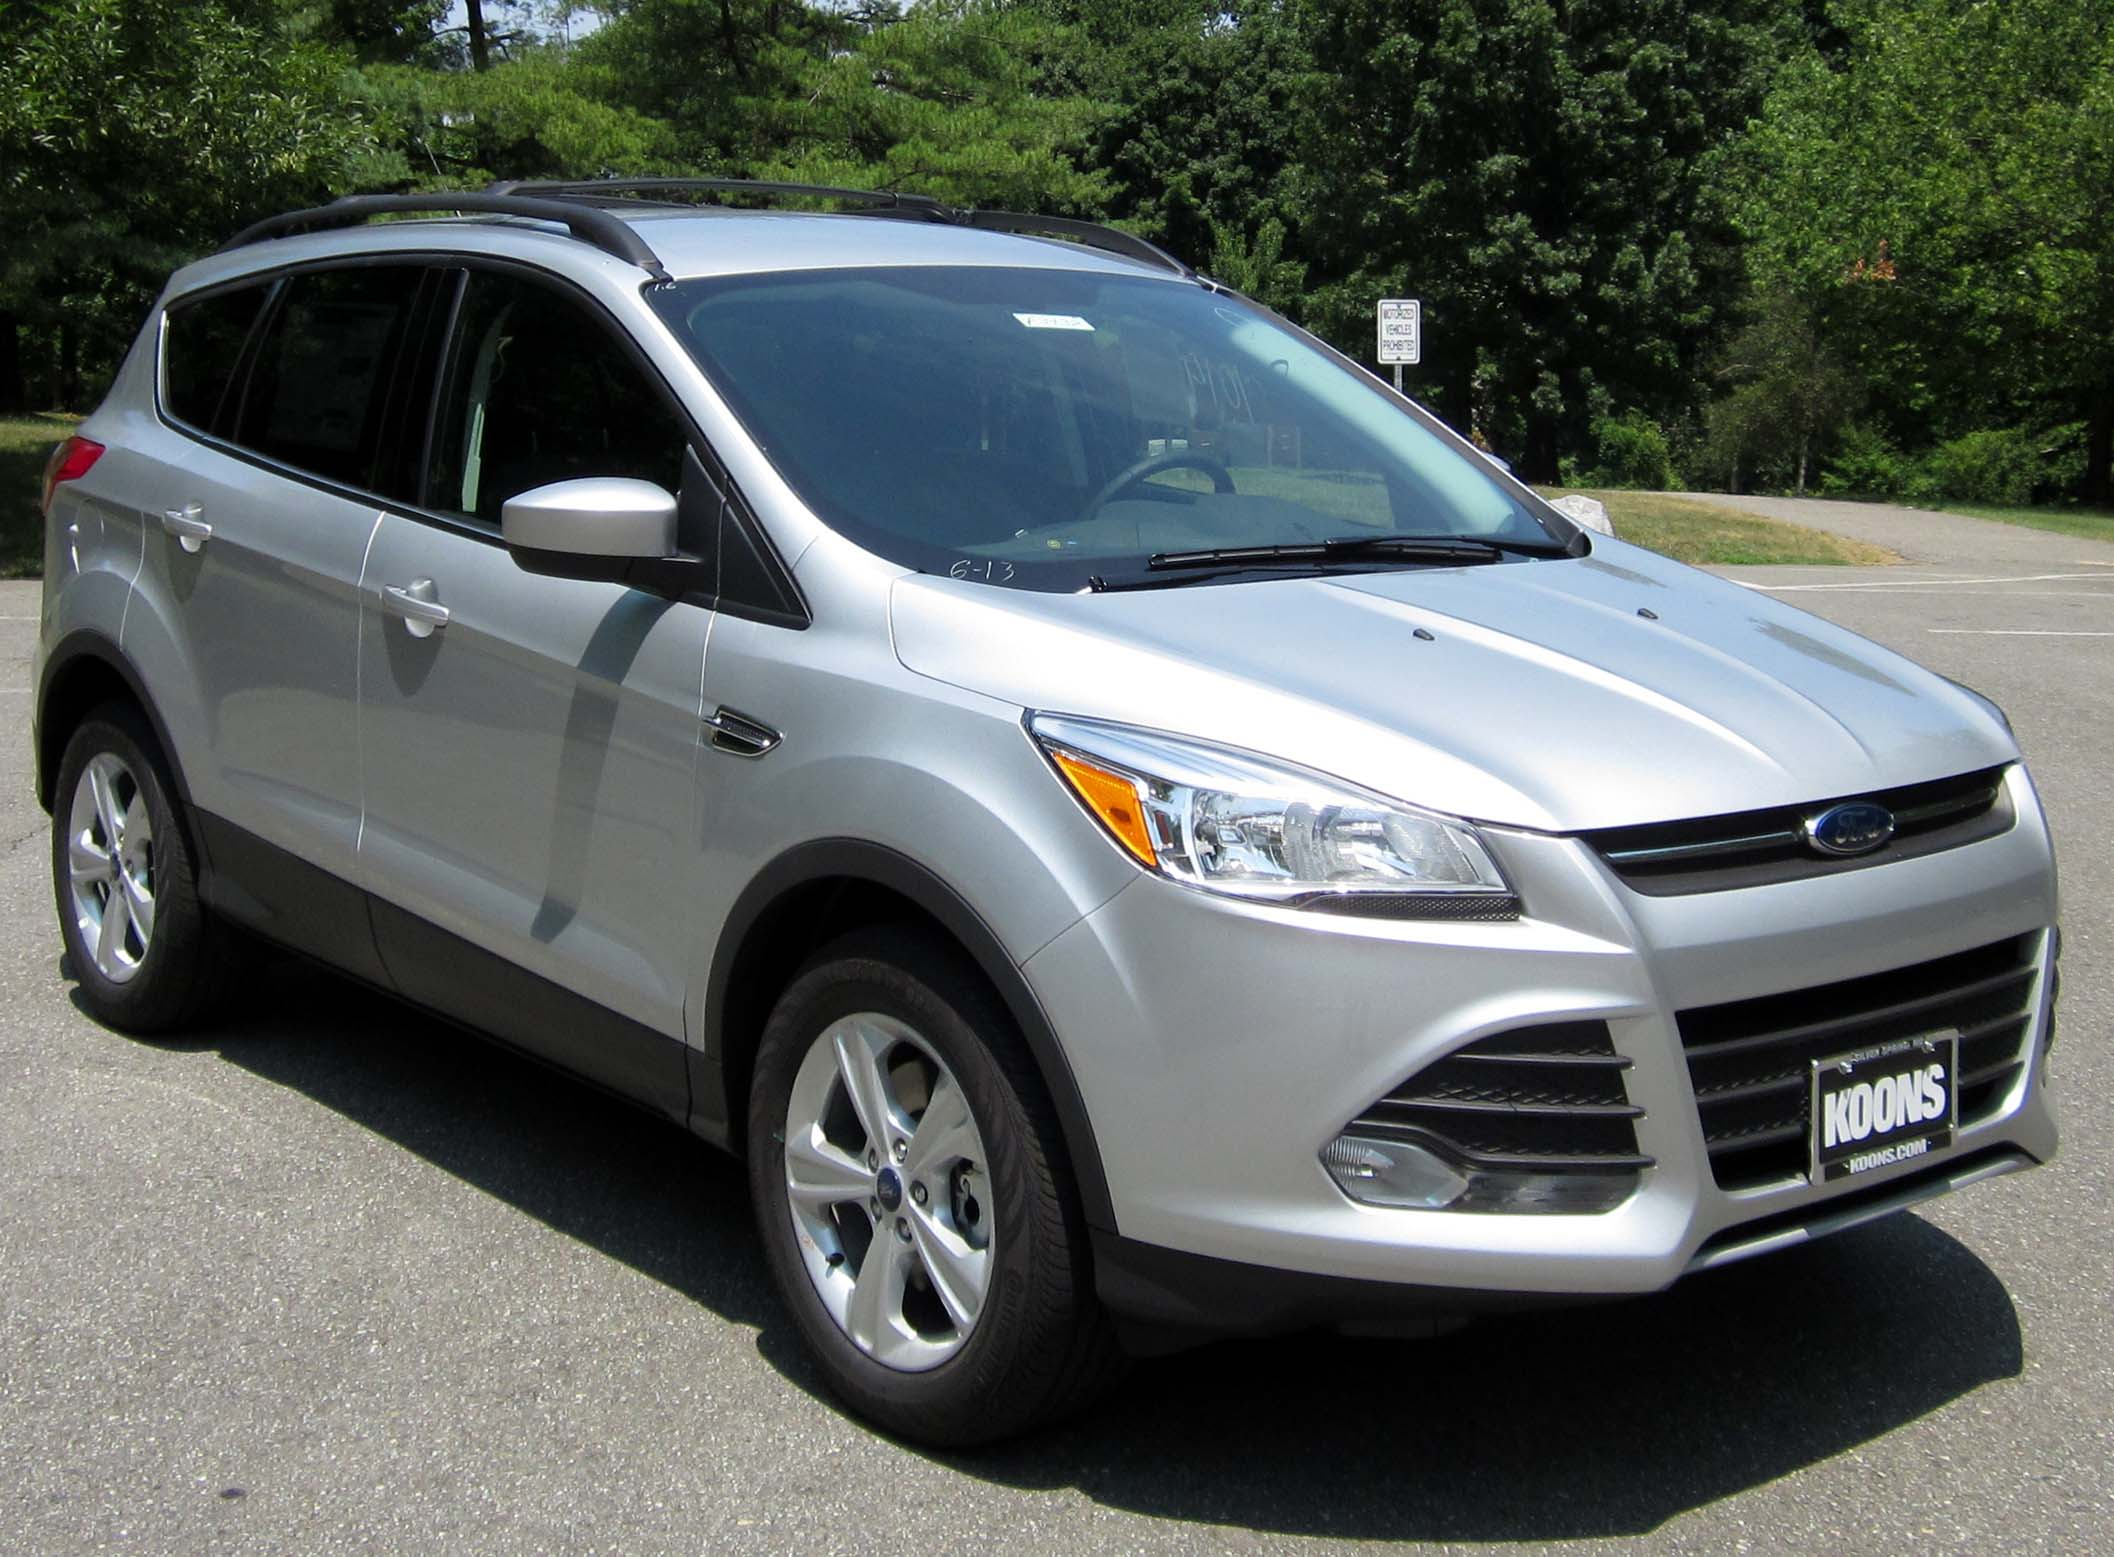 File2013 Ford Escape SE  07112012JPG  Wikimedia Commons